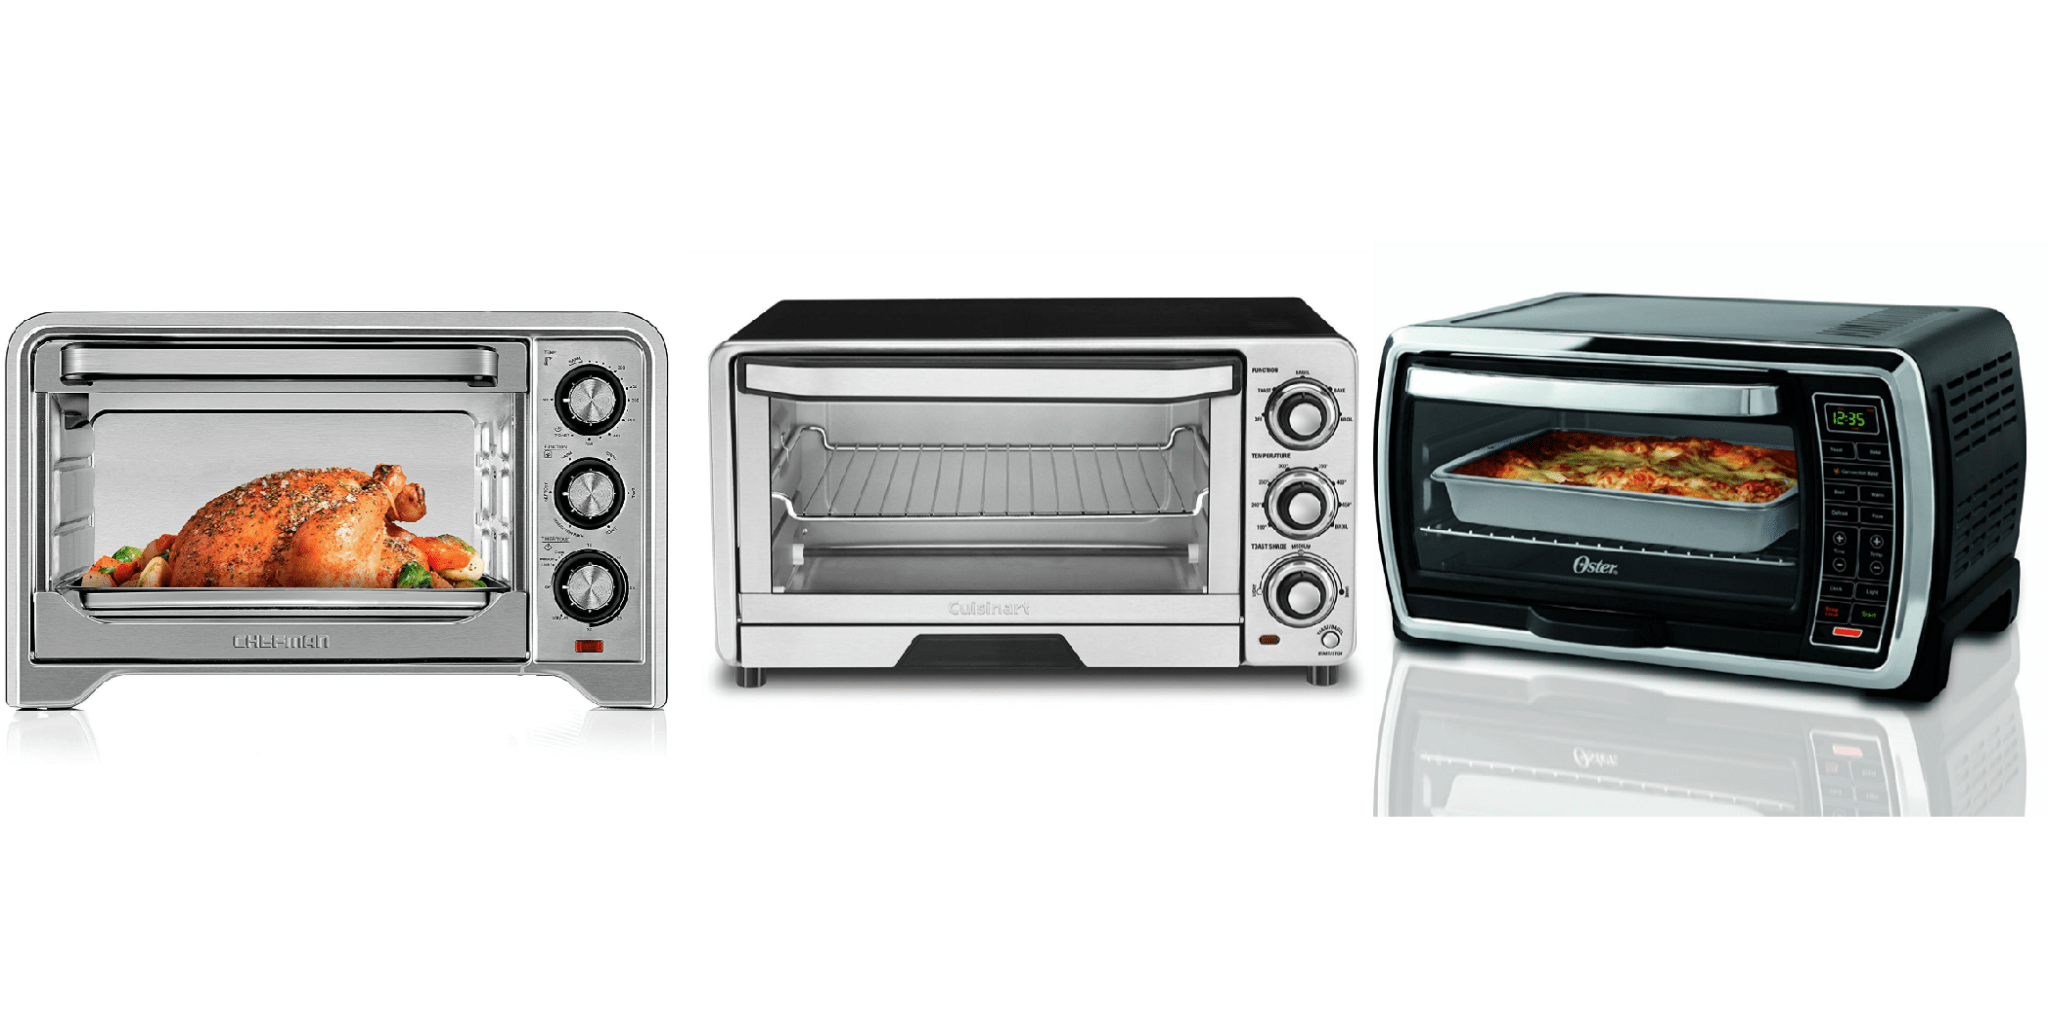 10 Best Toaster Ovens Toaster Ovens To Shop Delish Com